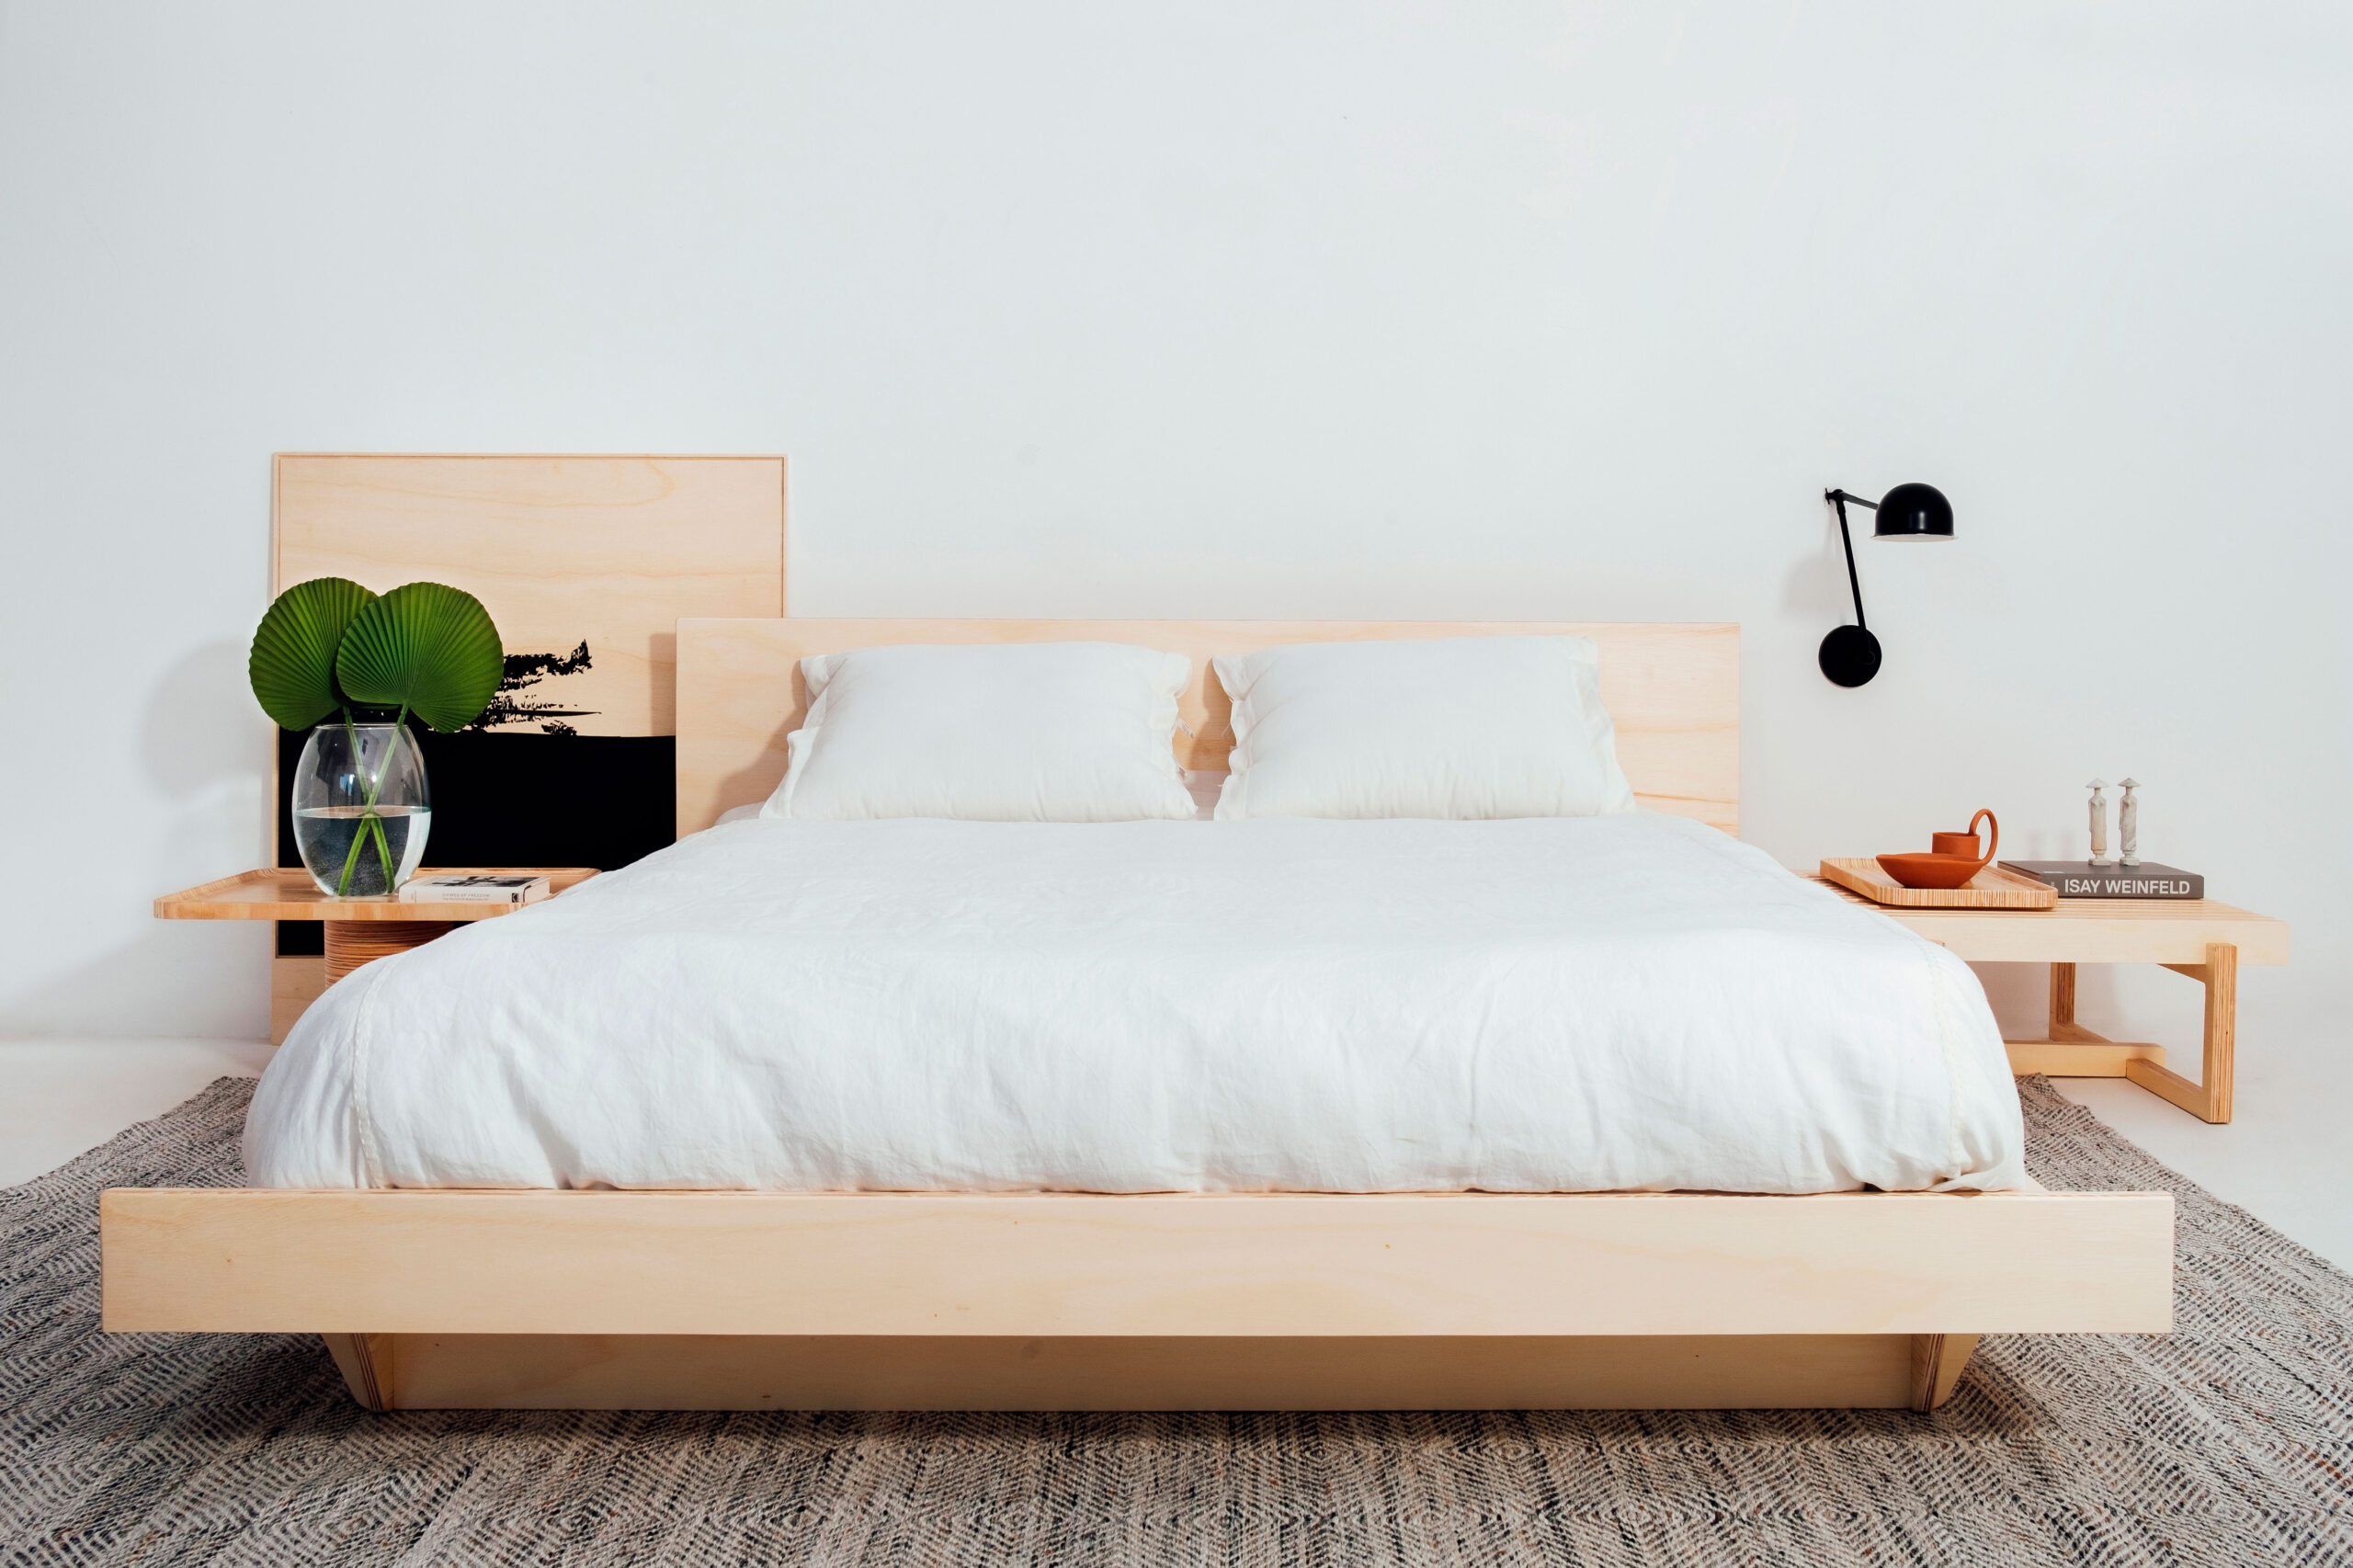 Modular premium flat pack queen bed made from eco-friendly birch plywood